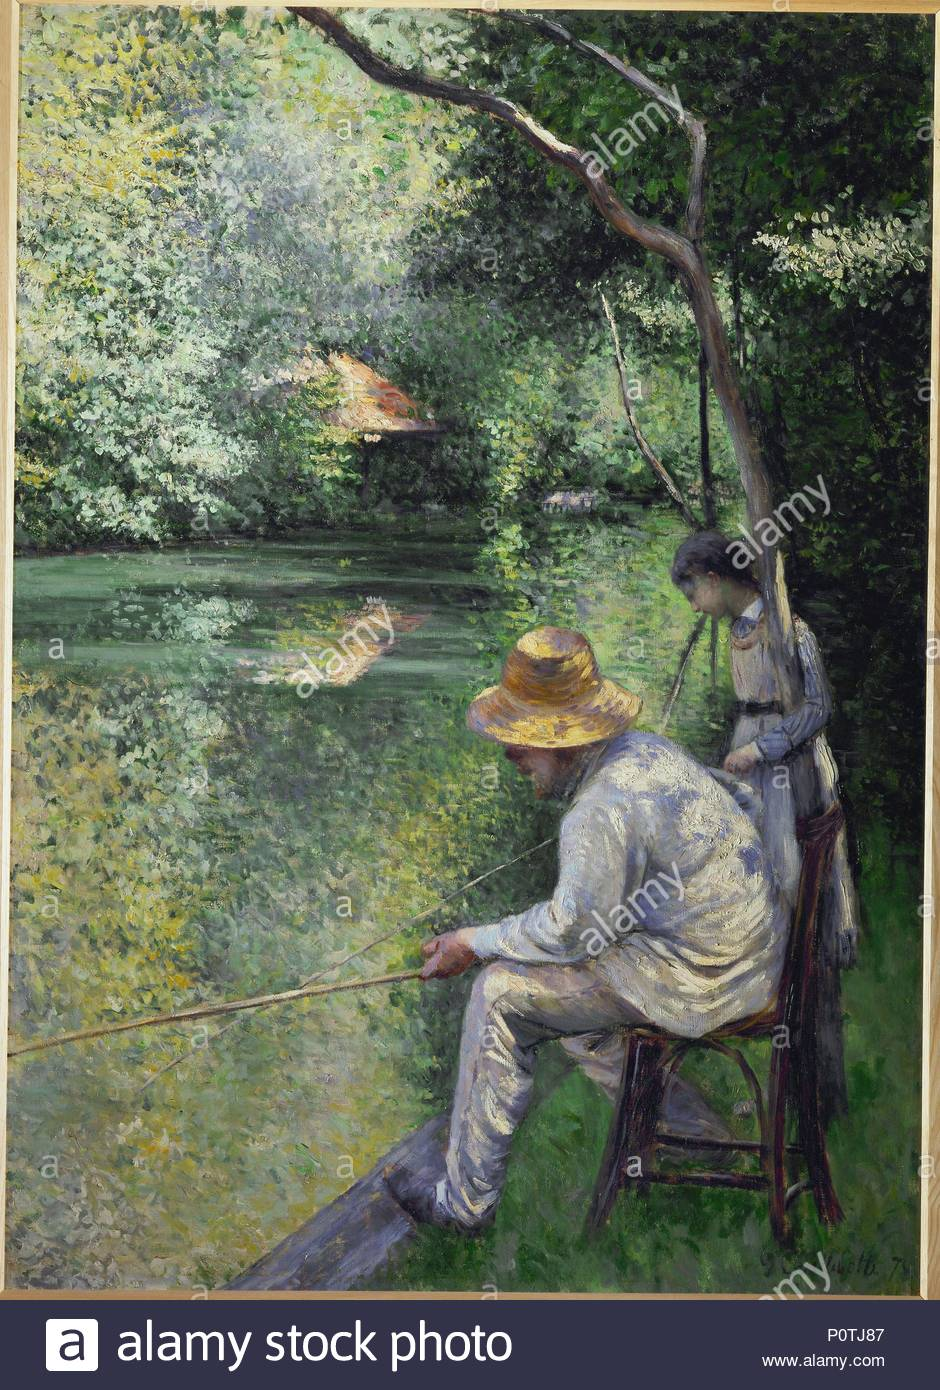 Peche a la ligne-Angling, 1878 Oil on canvas, 157 x 113 cm. Author: Gustave Caillebotte (1848-1894). Location: Private Collection,, France. - Stock Image